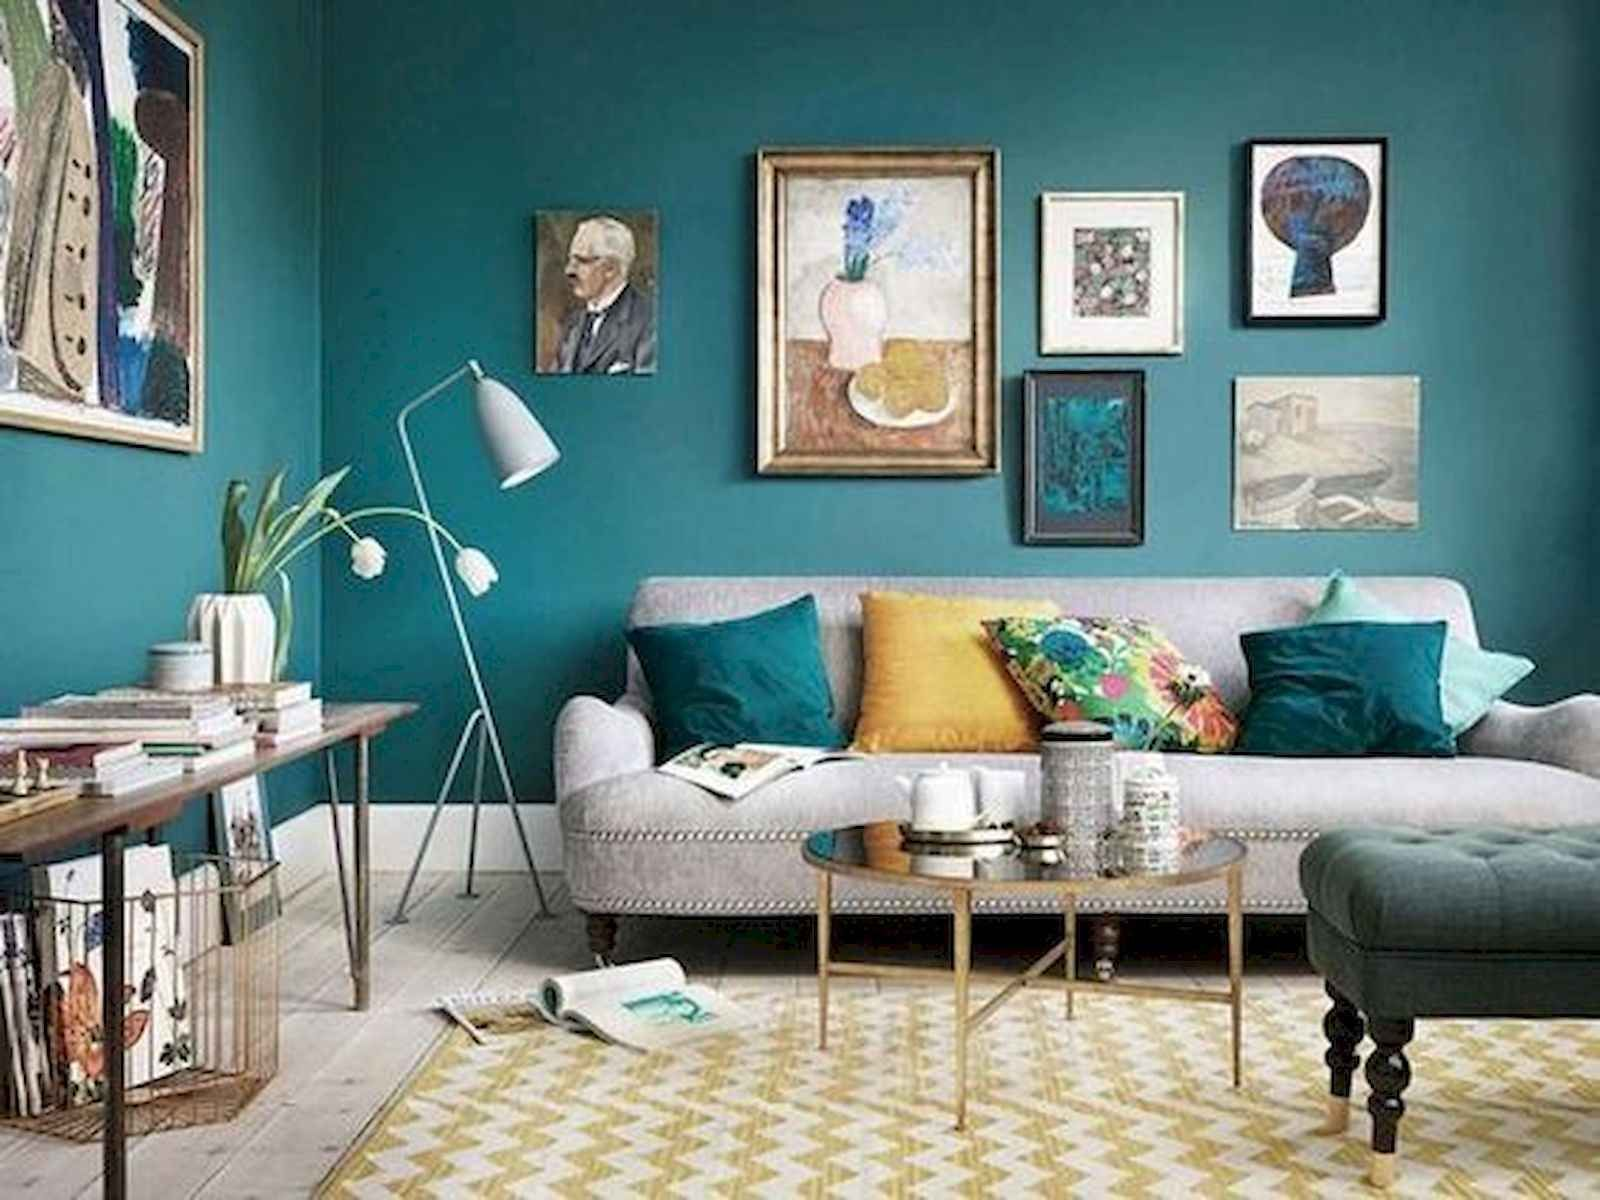 60 Favorite Living Room Colour Schemes Decor Ideas And Remodel 55 Living Room Turquoise Green Living Room Decor Teal Living Rooms #turquoise #color #scheme #for #living #room